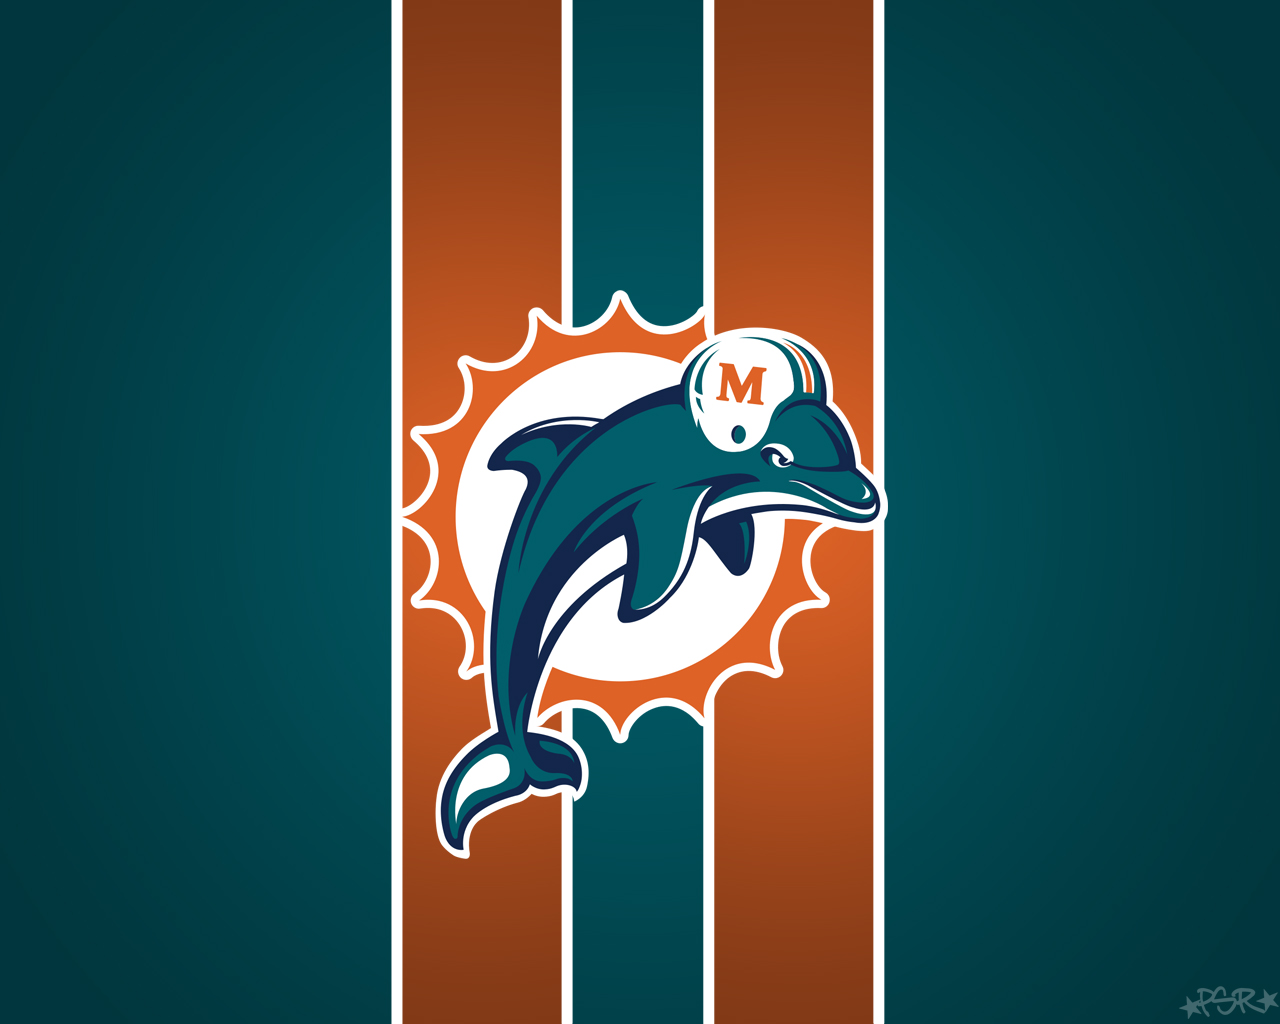 1280x1024 - Miami Dolphins Wallpapers 3